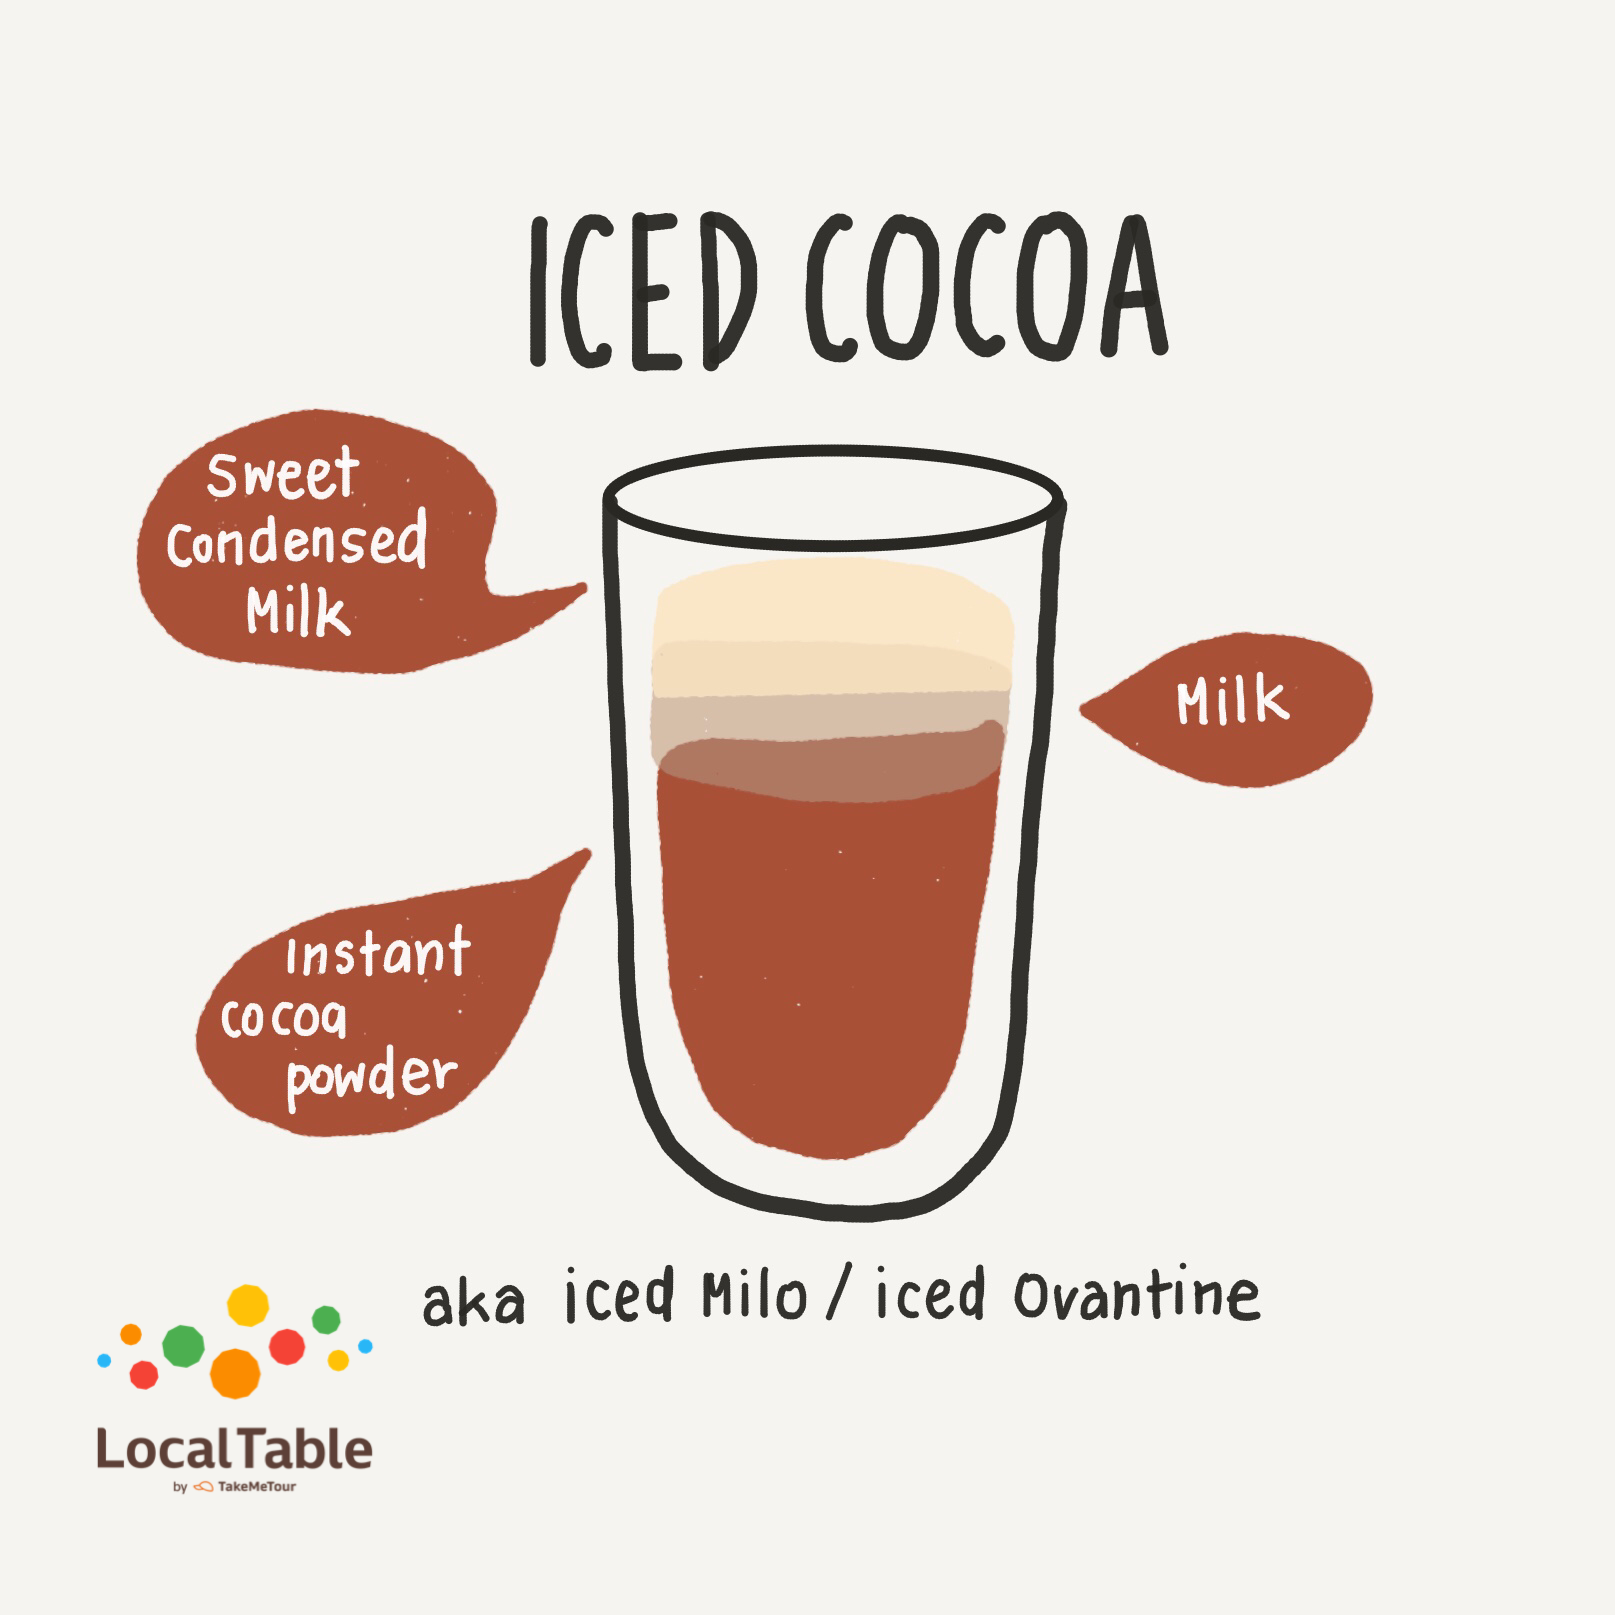 7 Common Thai Drinks To Try From The Local Street Vendors Iced Americano Coffee Images Sweet Condensed Milk